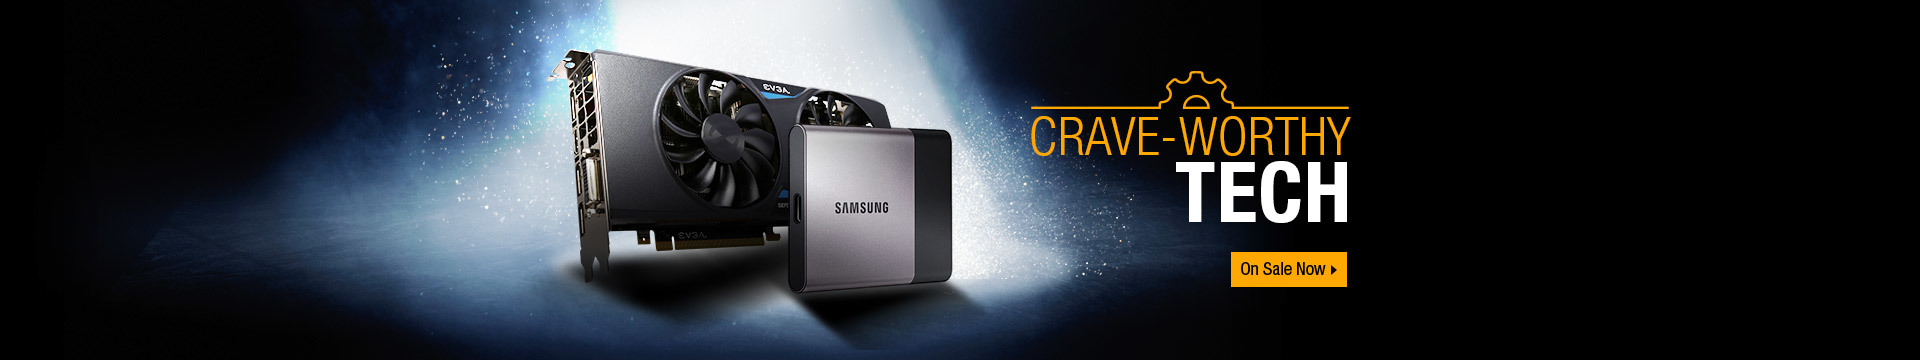 CRAVE-WORTHY TECH